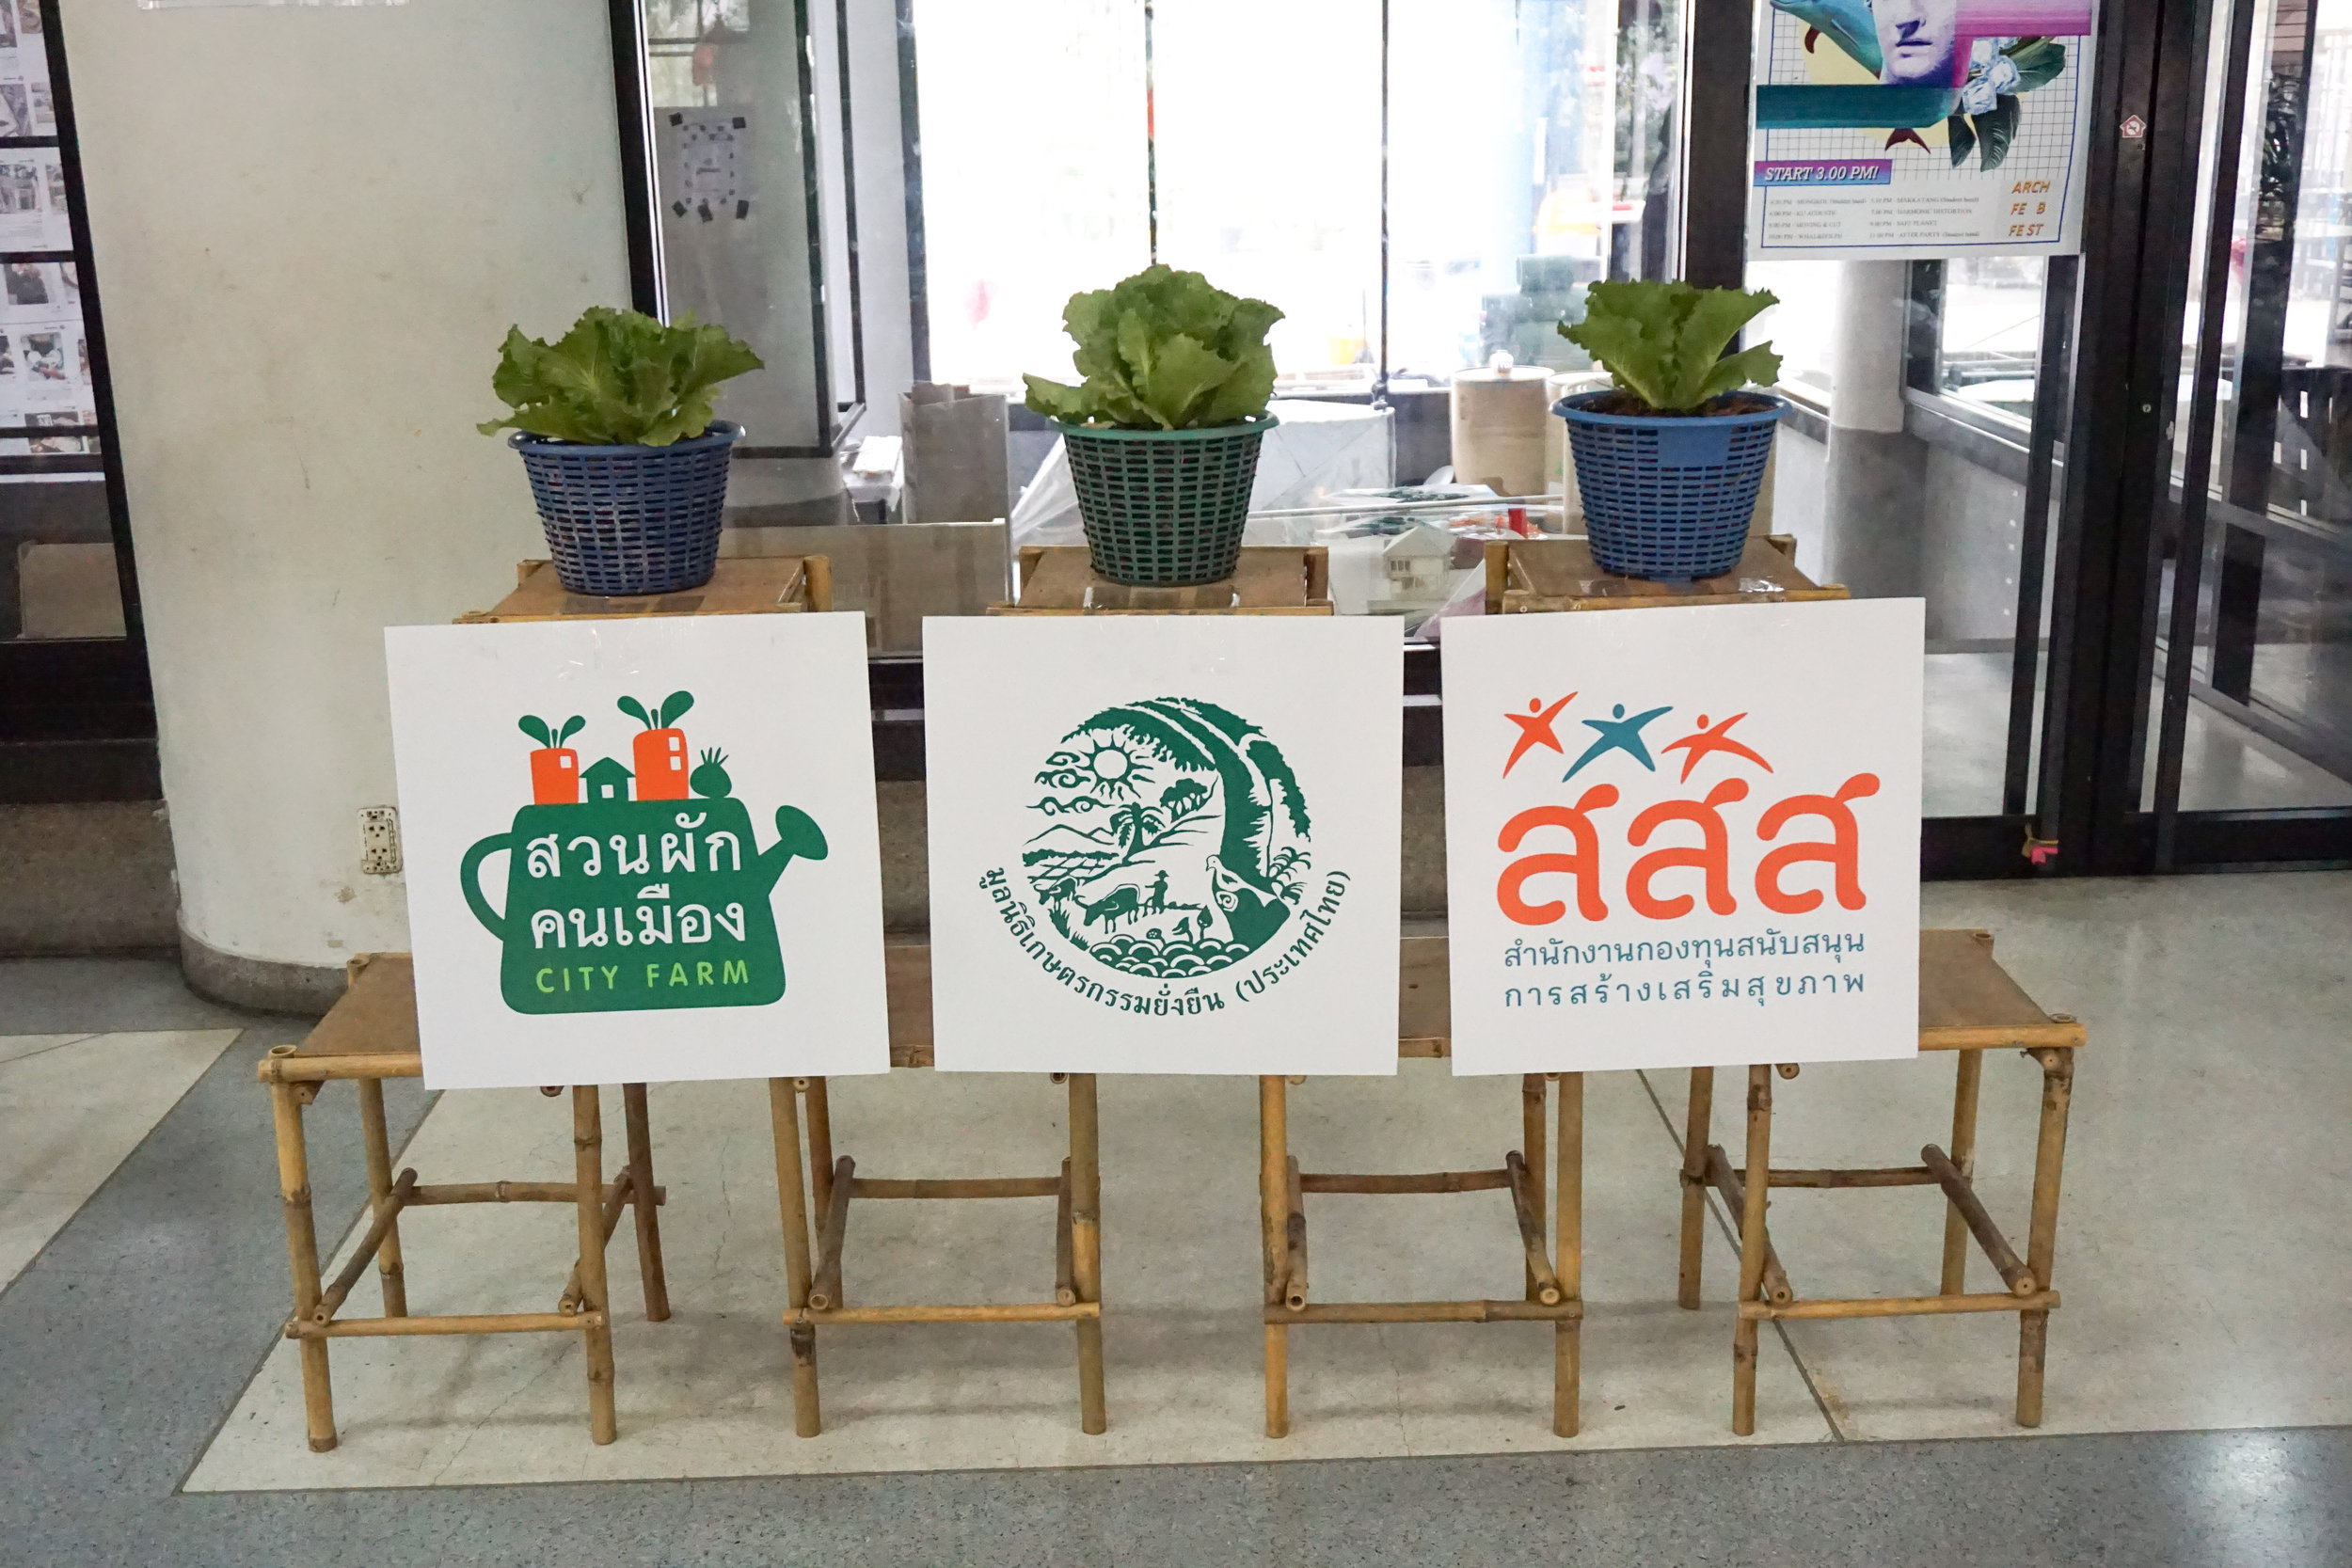 City Farming for a Sustainable City Event: Sponsors and partners